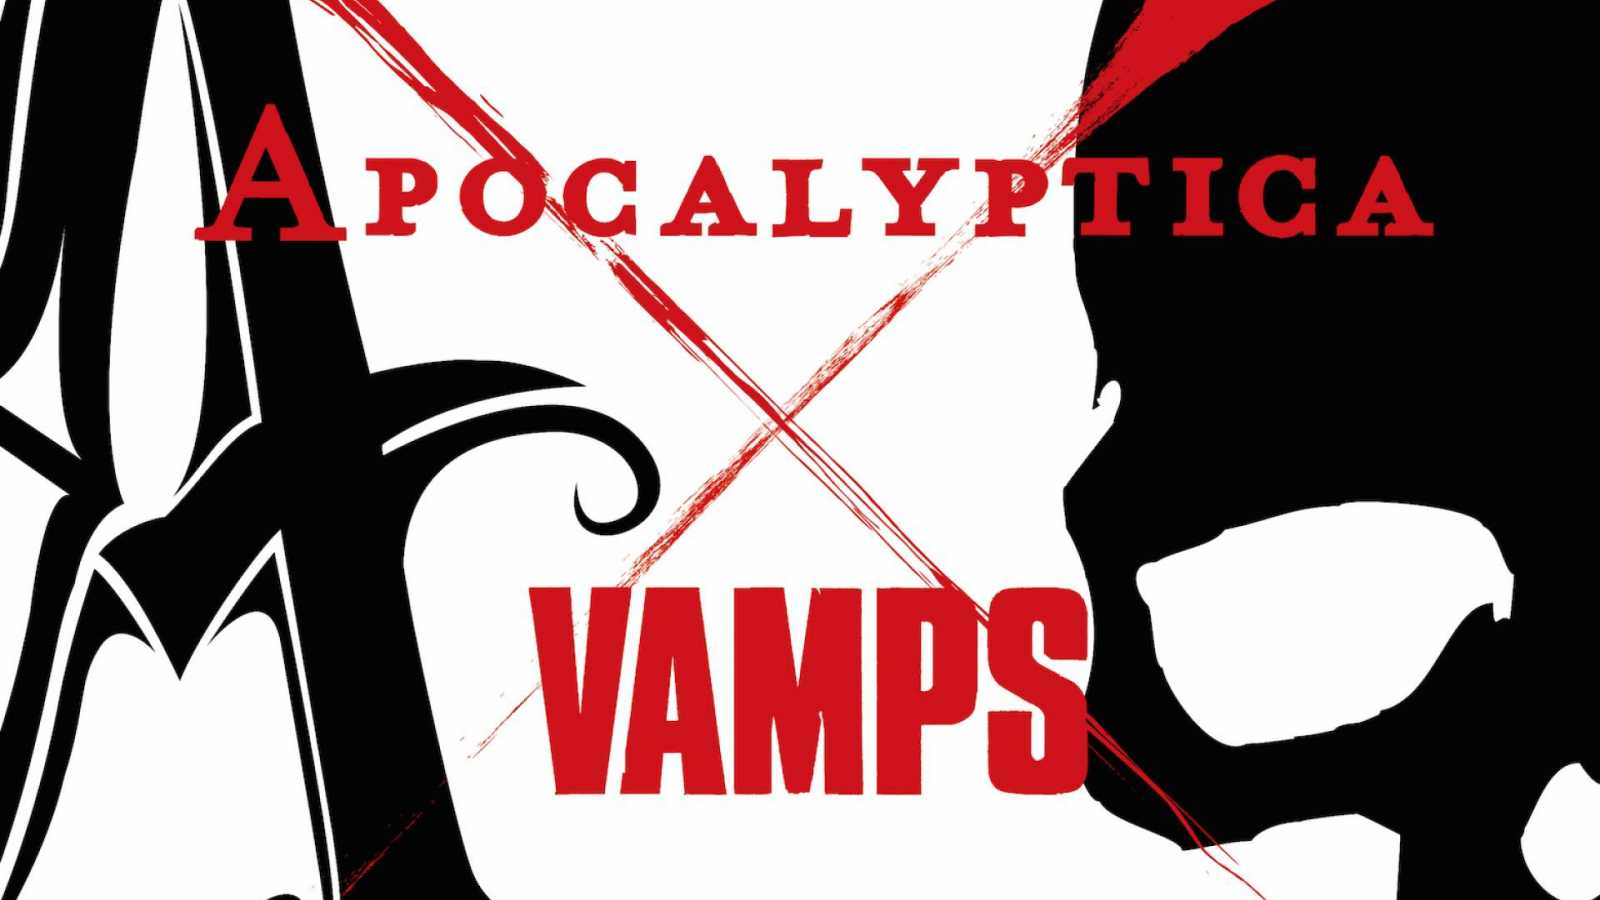 APOCALYPTICA X VAMPS: SIN IN JUSTICE © All rights reserved.